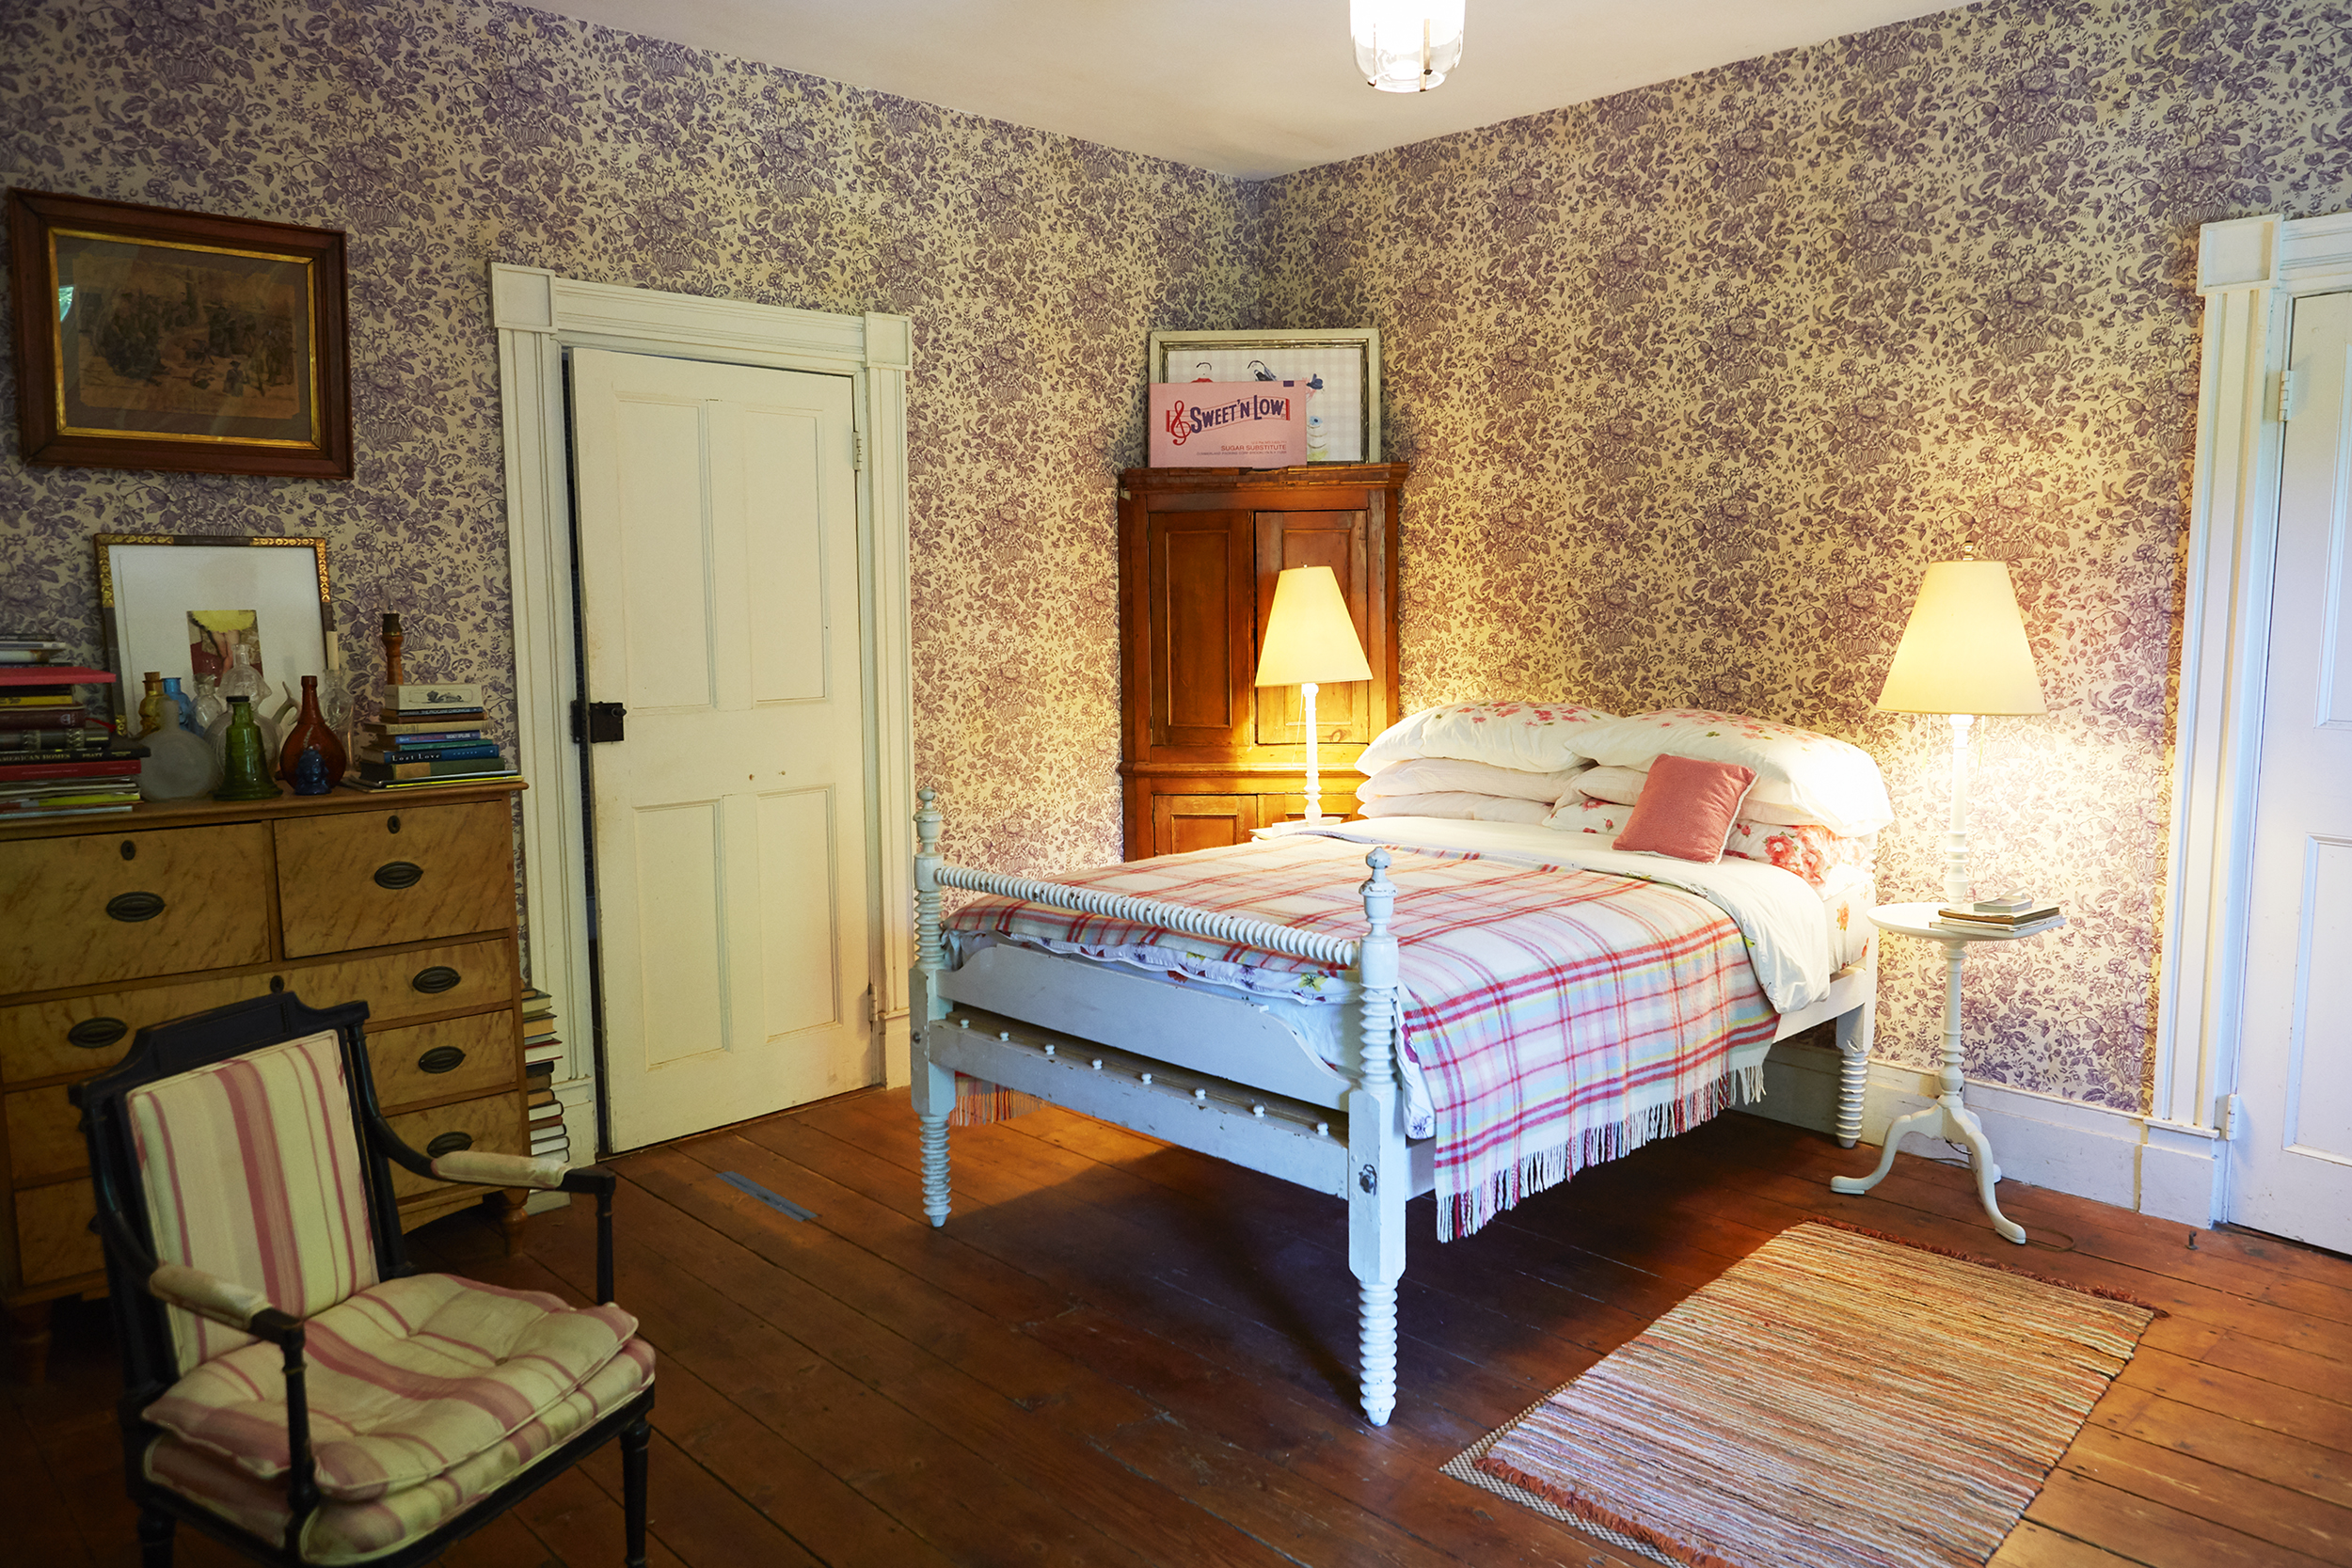 Guest bedroom features  Sweet and Low  by Sylvie Fleury.